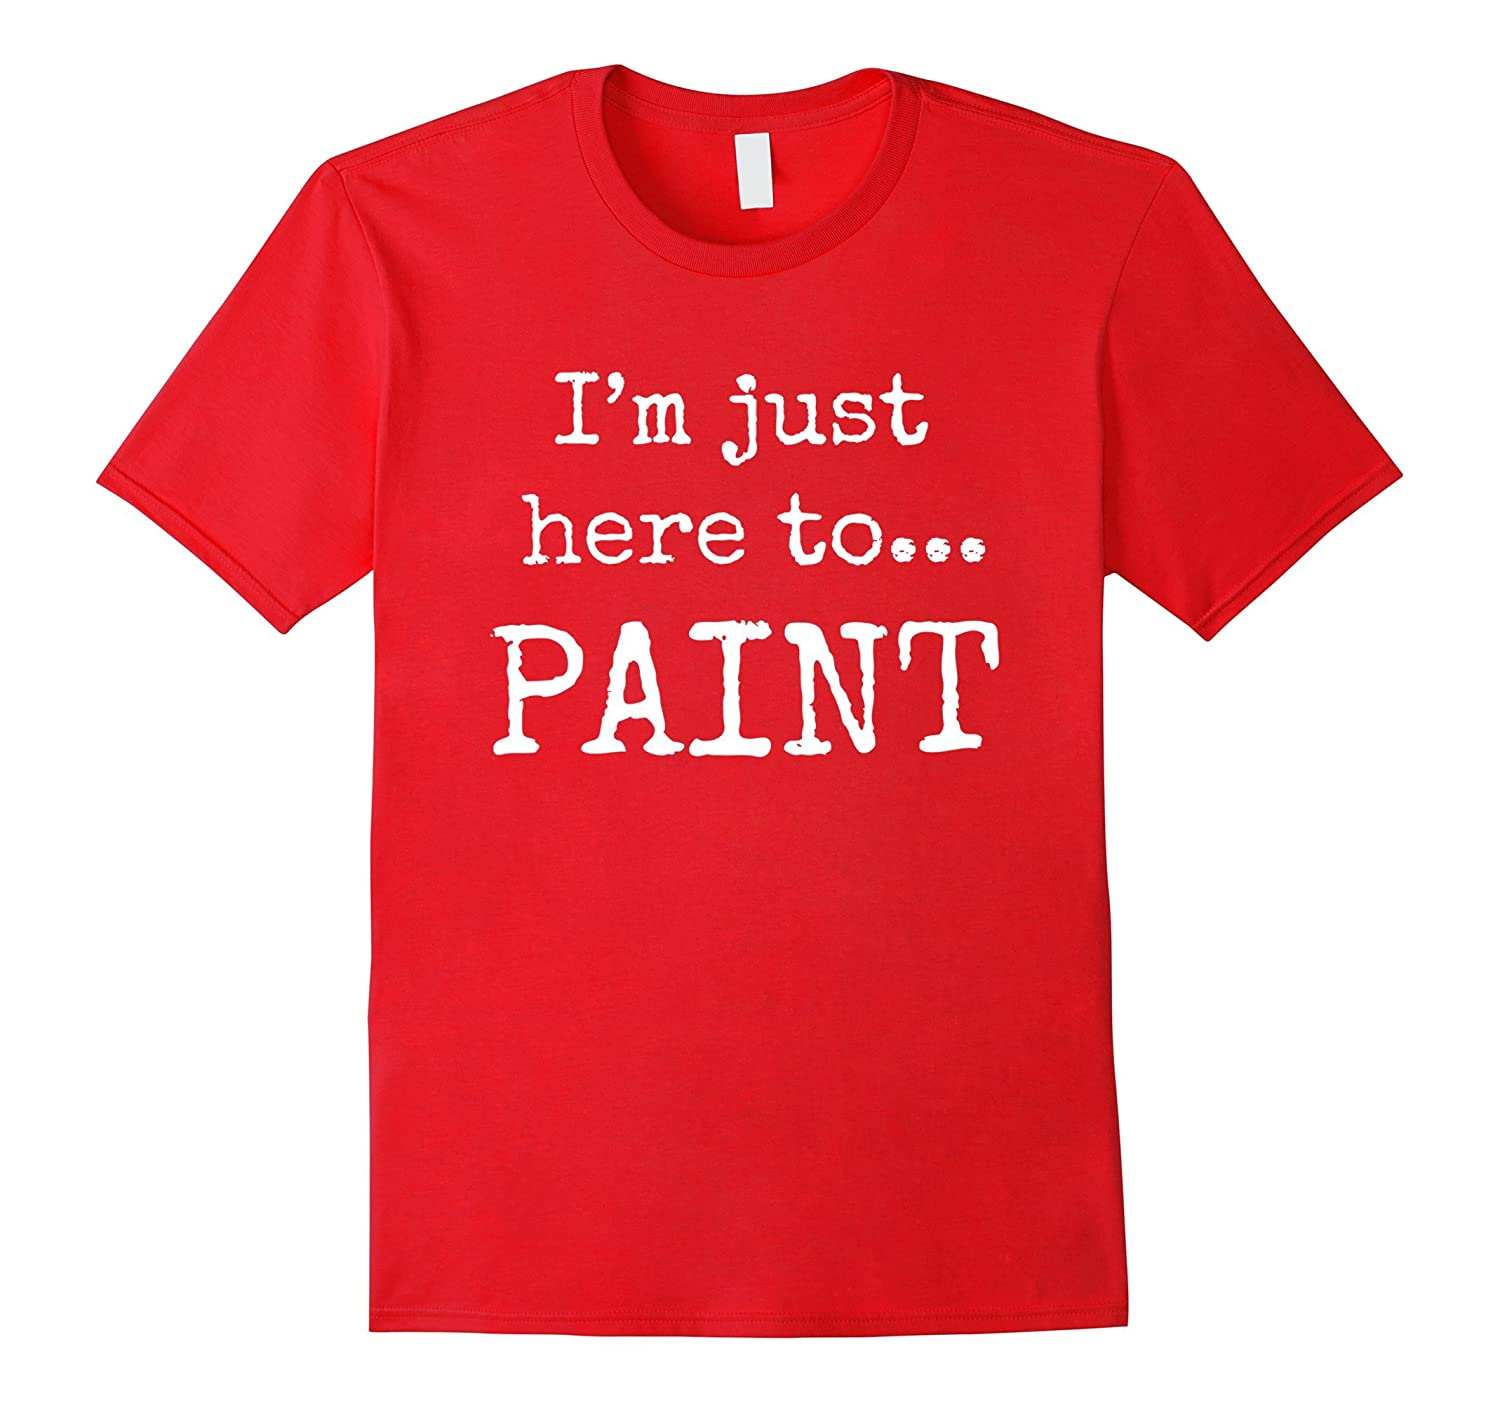 Cool Painting T Shirts. Gifts for Painters. Here to Paint.-FL